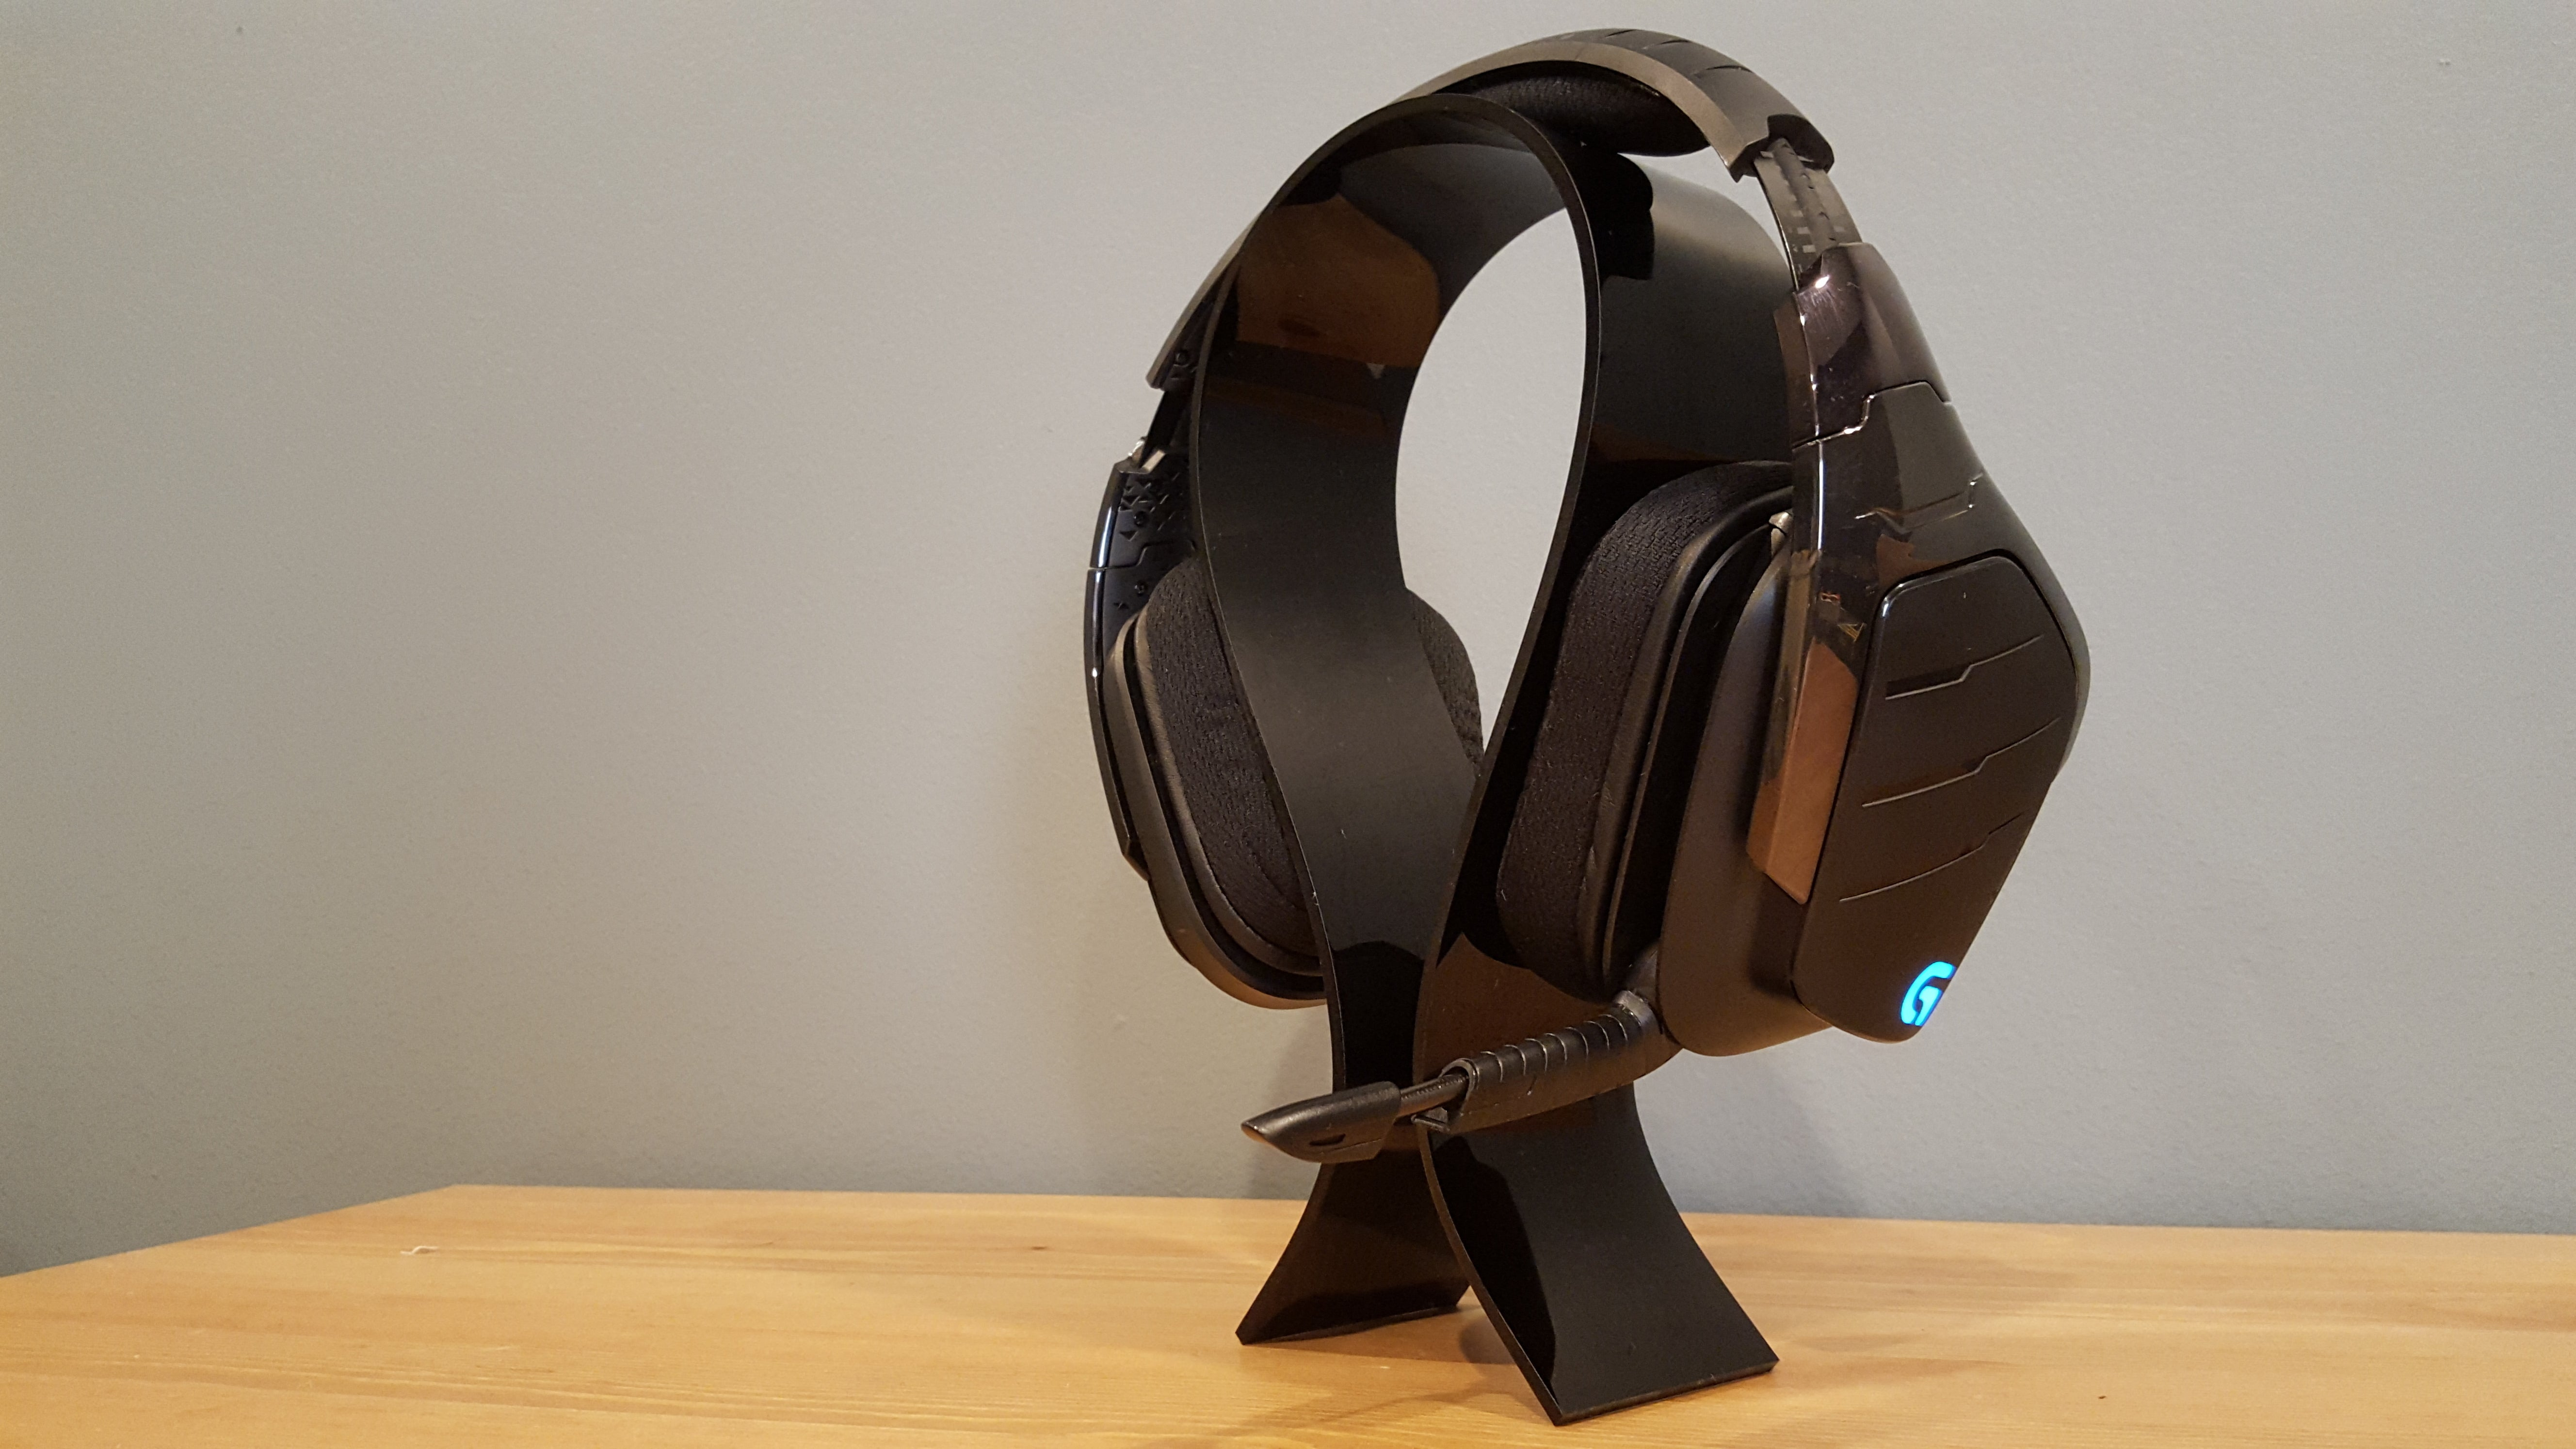 Logitech G933 Review This Wireless Headset Is So Good You Can Skip Steelseries Arctis 5 With 71 Dts Headphonex Black Rgb Its High End Competition Pcworld